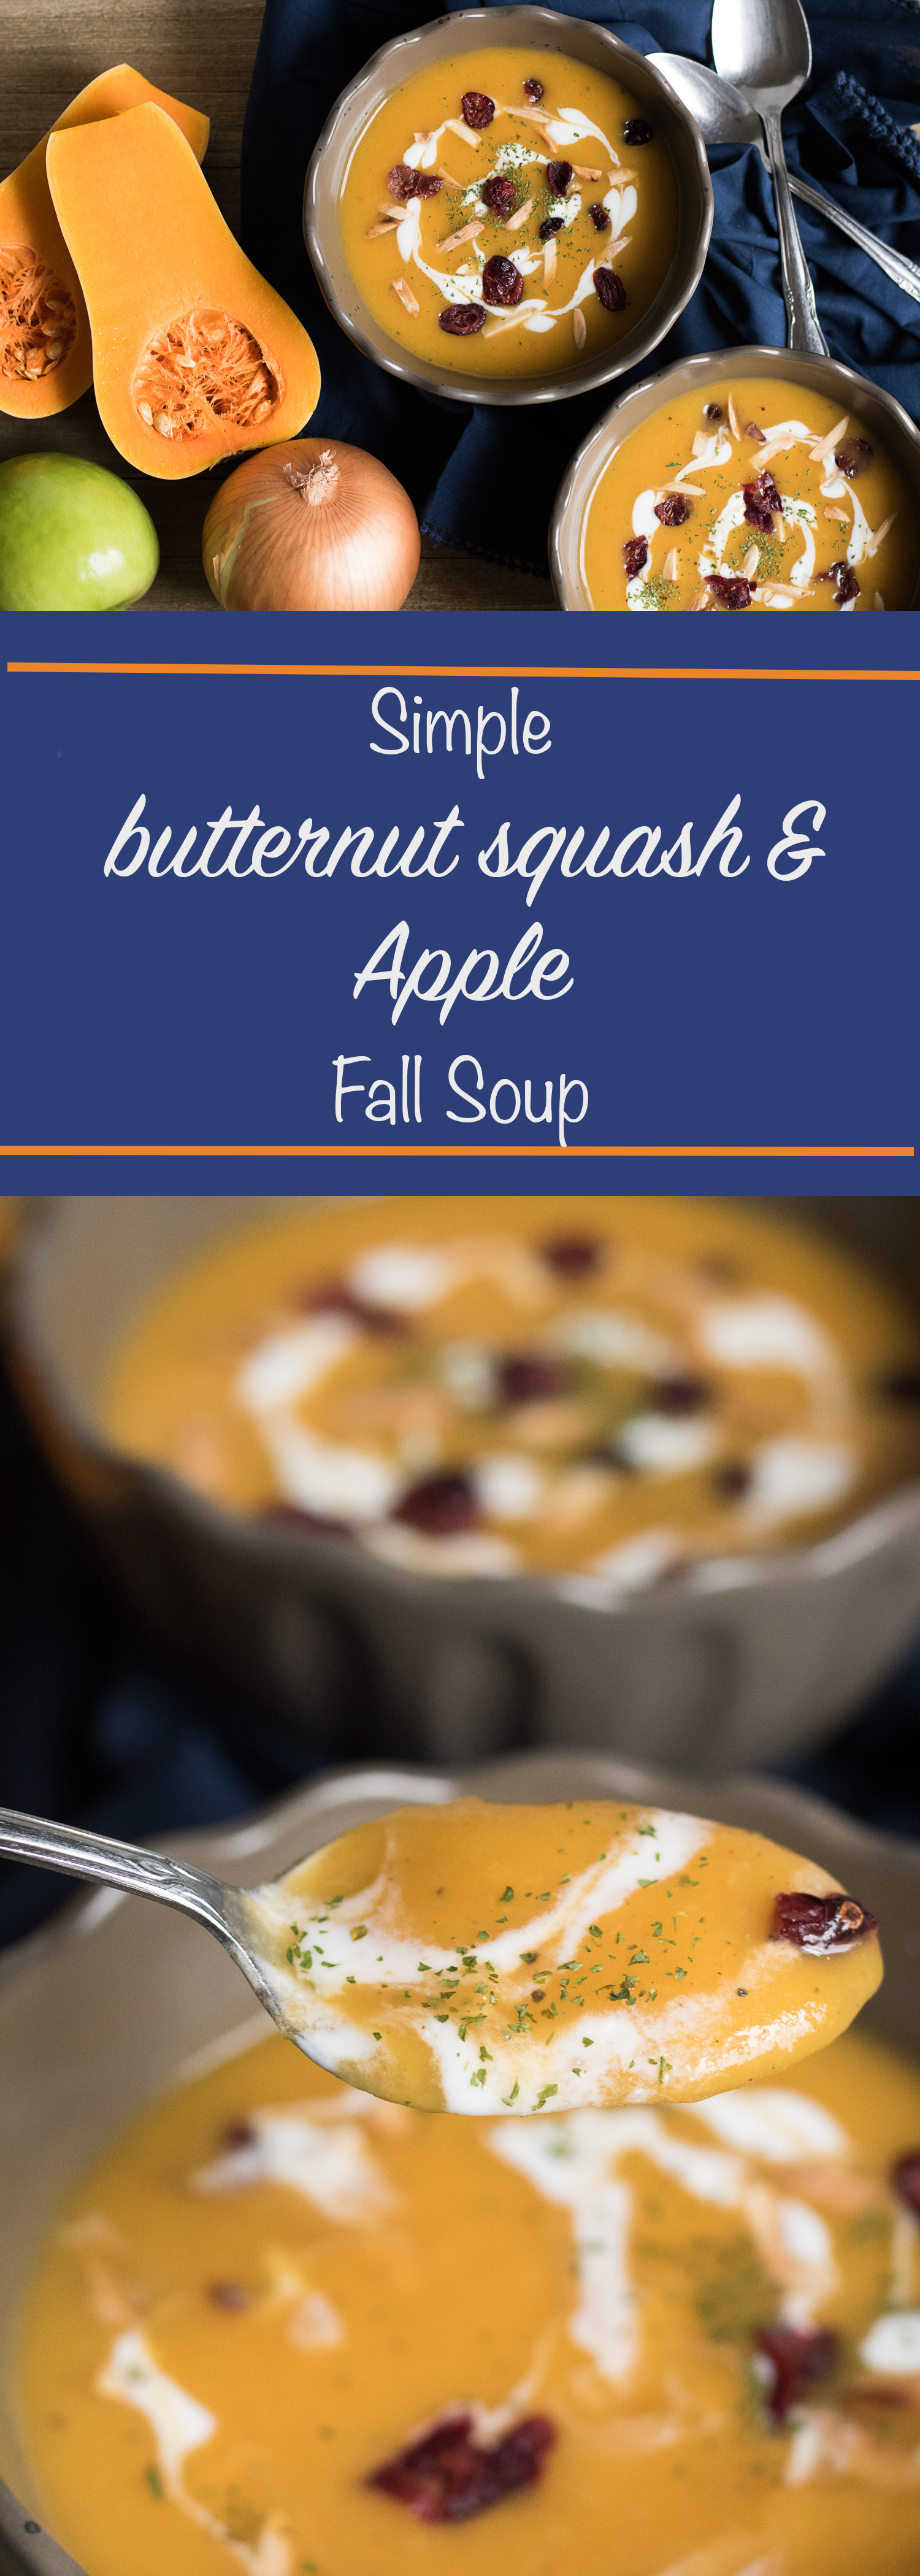 Simple butternut squash and apple fall soup